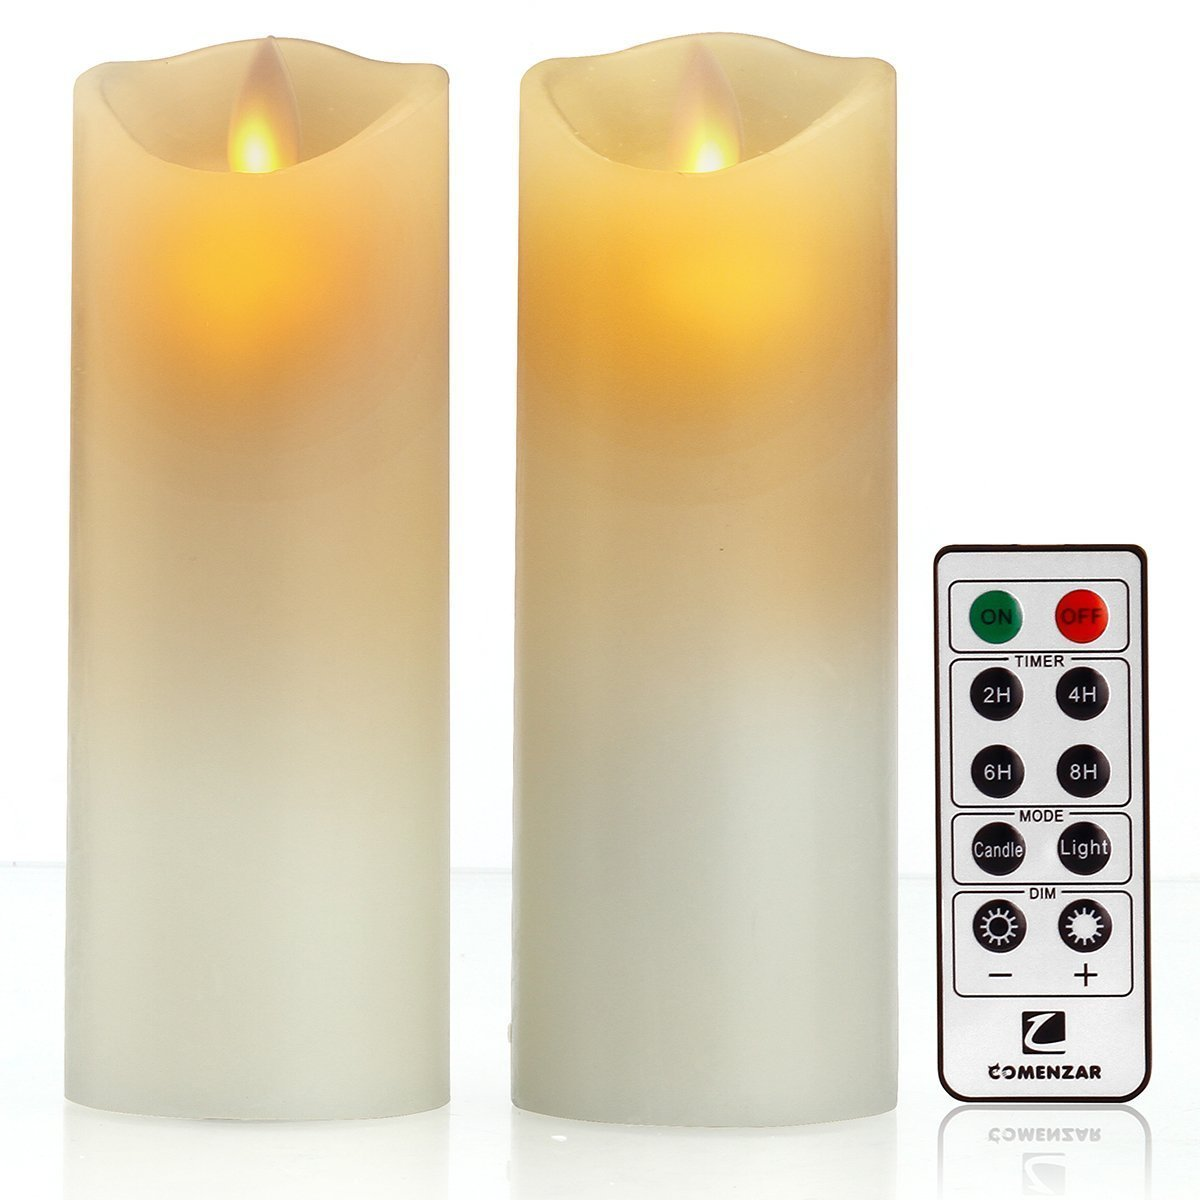 Candle Wall Sconce Set of 2 and Classic Pillar Real Flame-Effect Flameless LED Candles Set 6'' X 2.15'' with Remote and Timer Feature White Color - Set of 2 Metal Iron Glass Home Decor Room Bronze by Piller (Image #2)